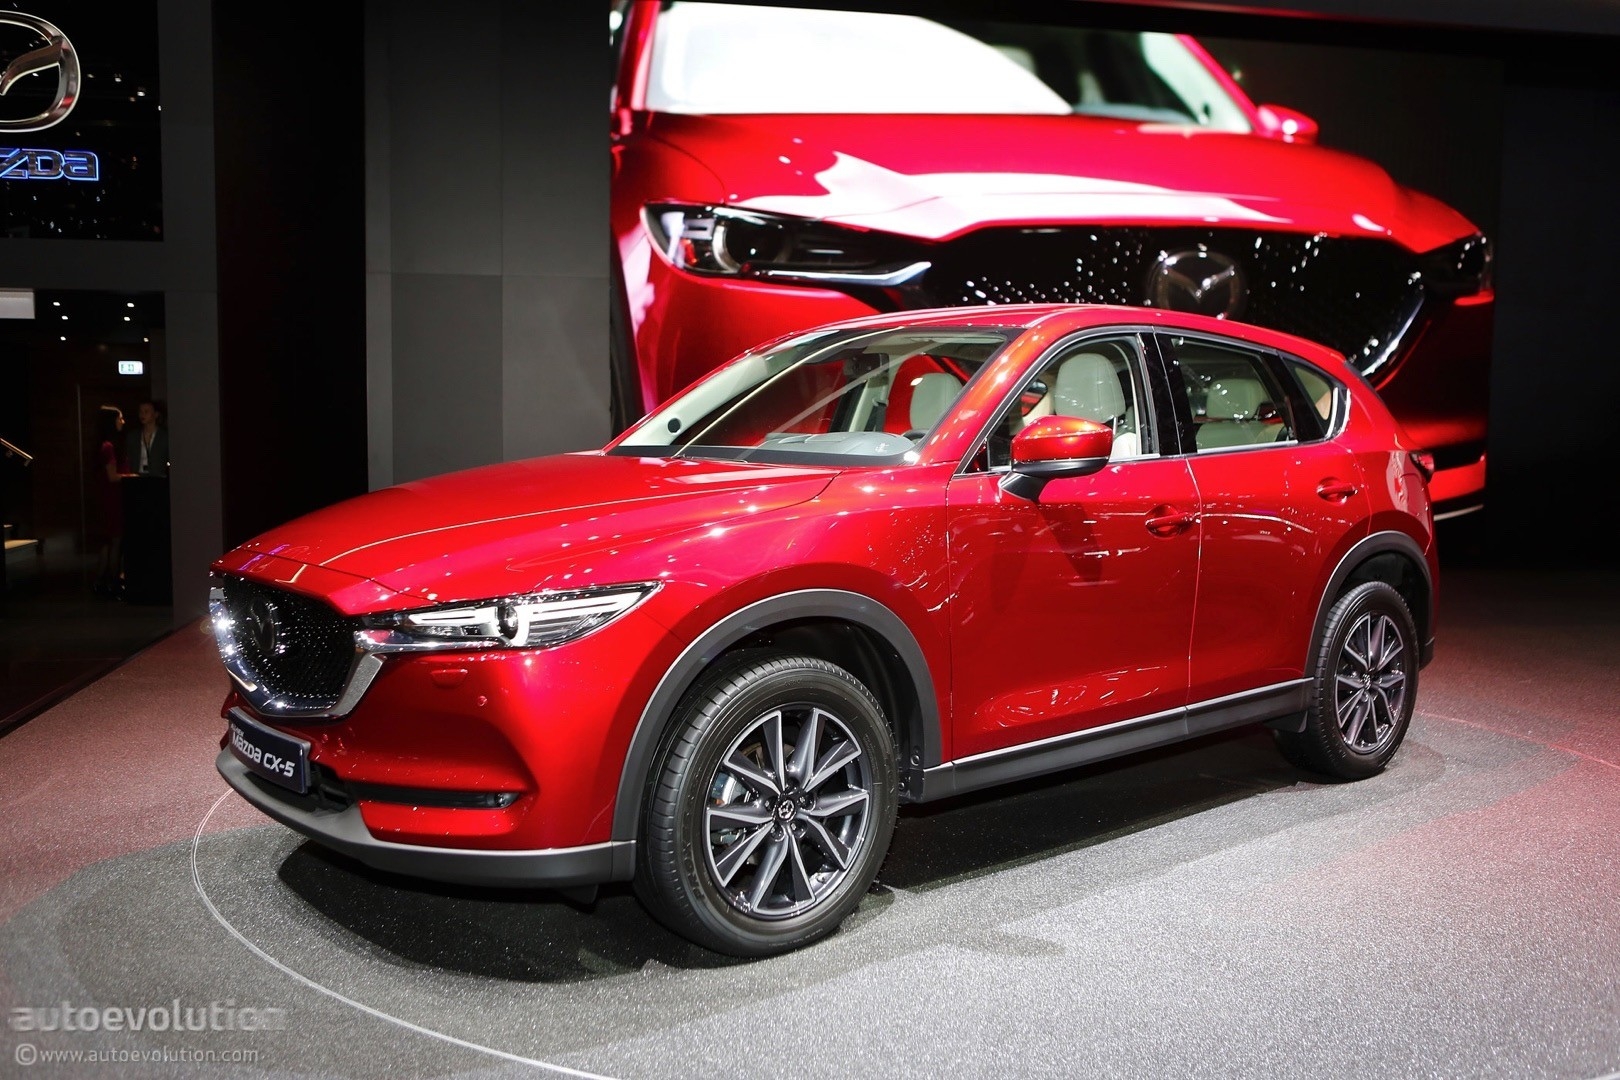 2018 mazda cx 8 teased in full it s more cx 9 than cx 5. Black Bedroom Furniture Sets. Home Design Ideas